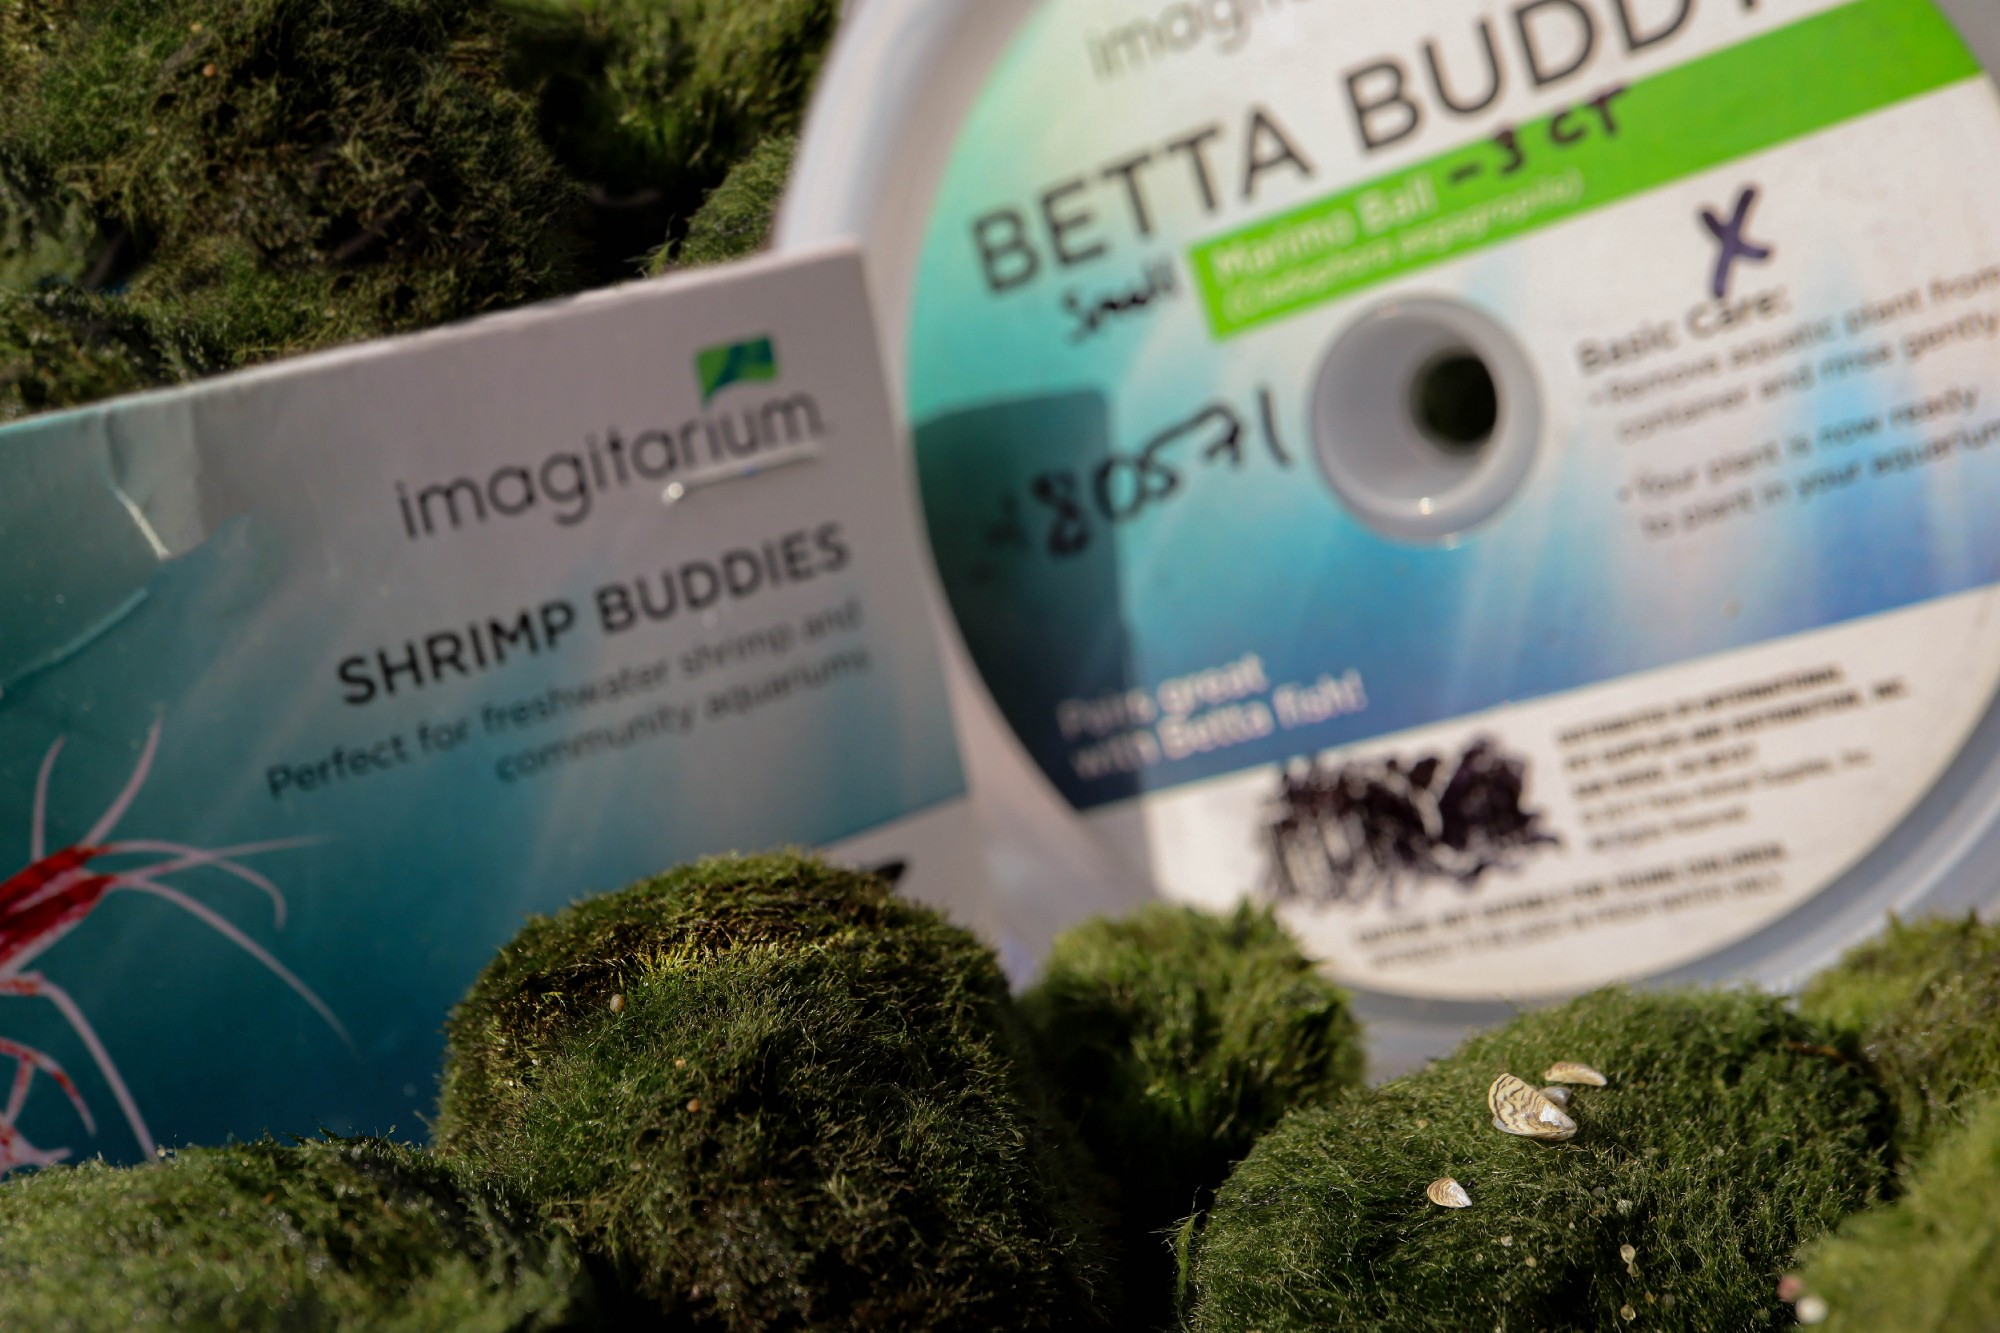 """Zebra mussels on a moss ball, surrounded by other moss balls and with """"Shrimp Buddies"""" and """"Betta Buddies"""" packaging in the background"""